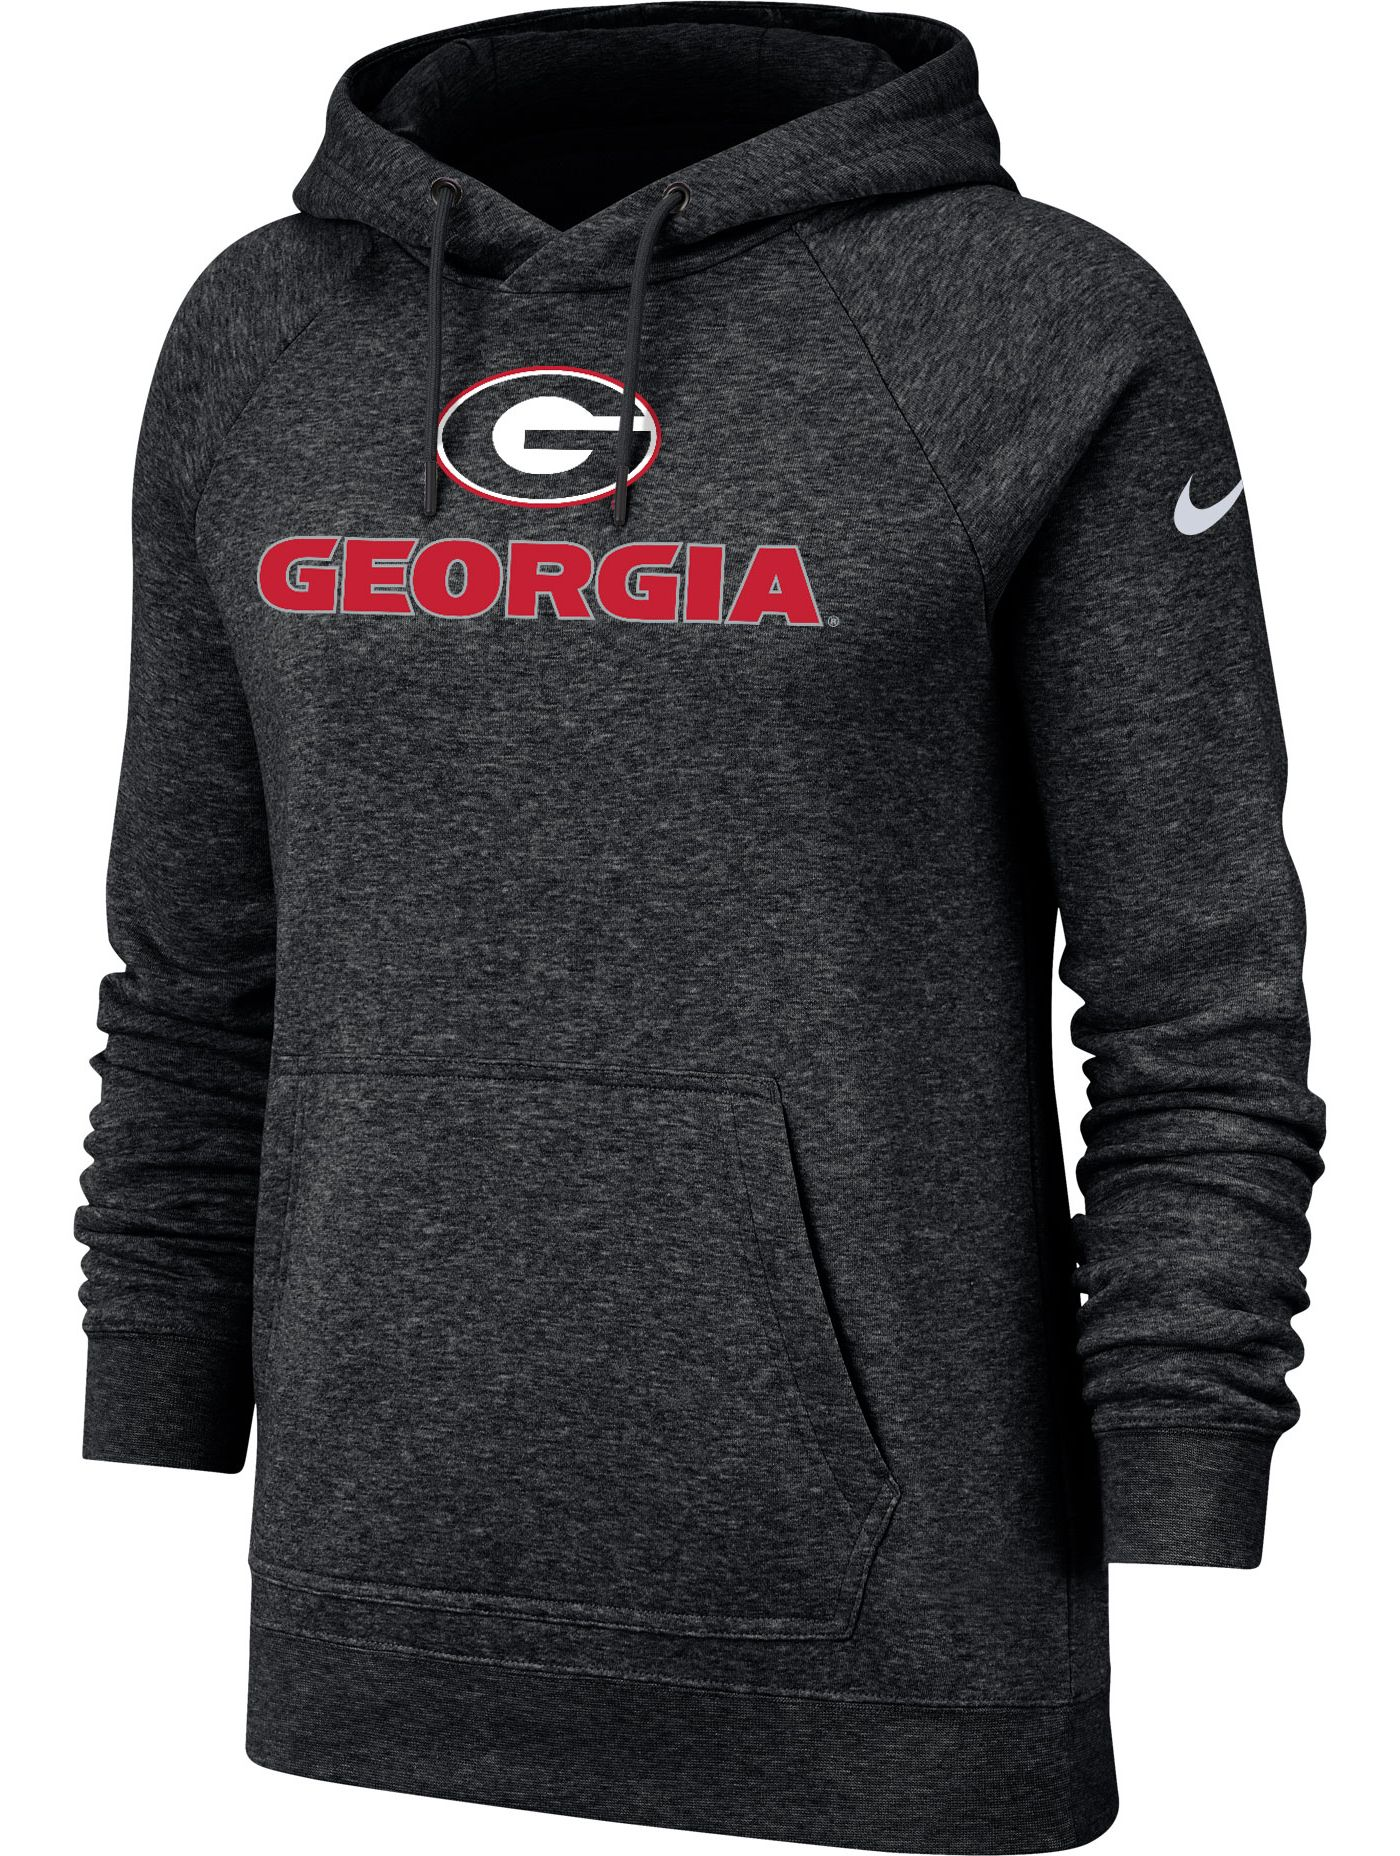 Nike Women's Georgia Bulldogs Rally Pullover Black Hoodie